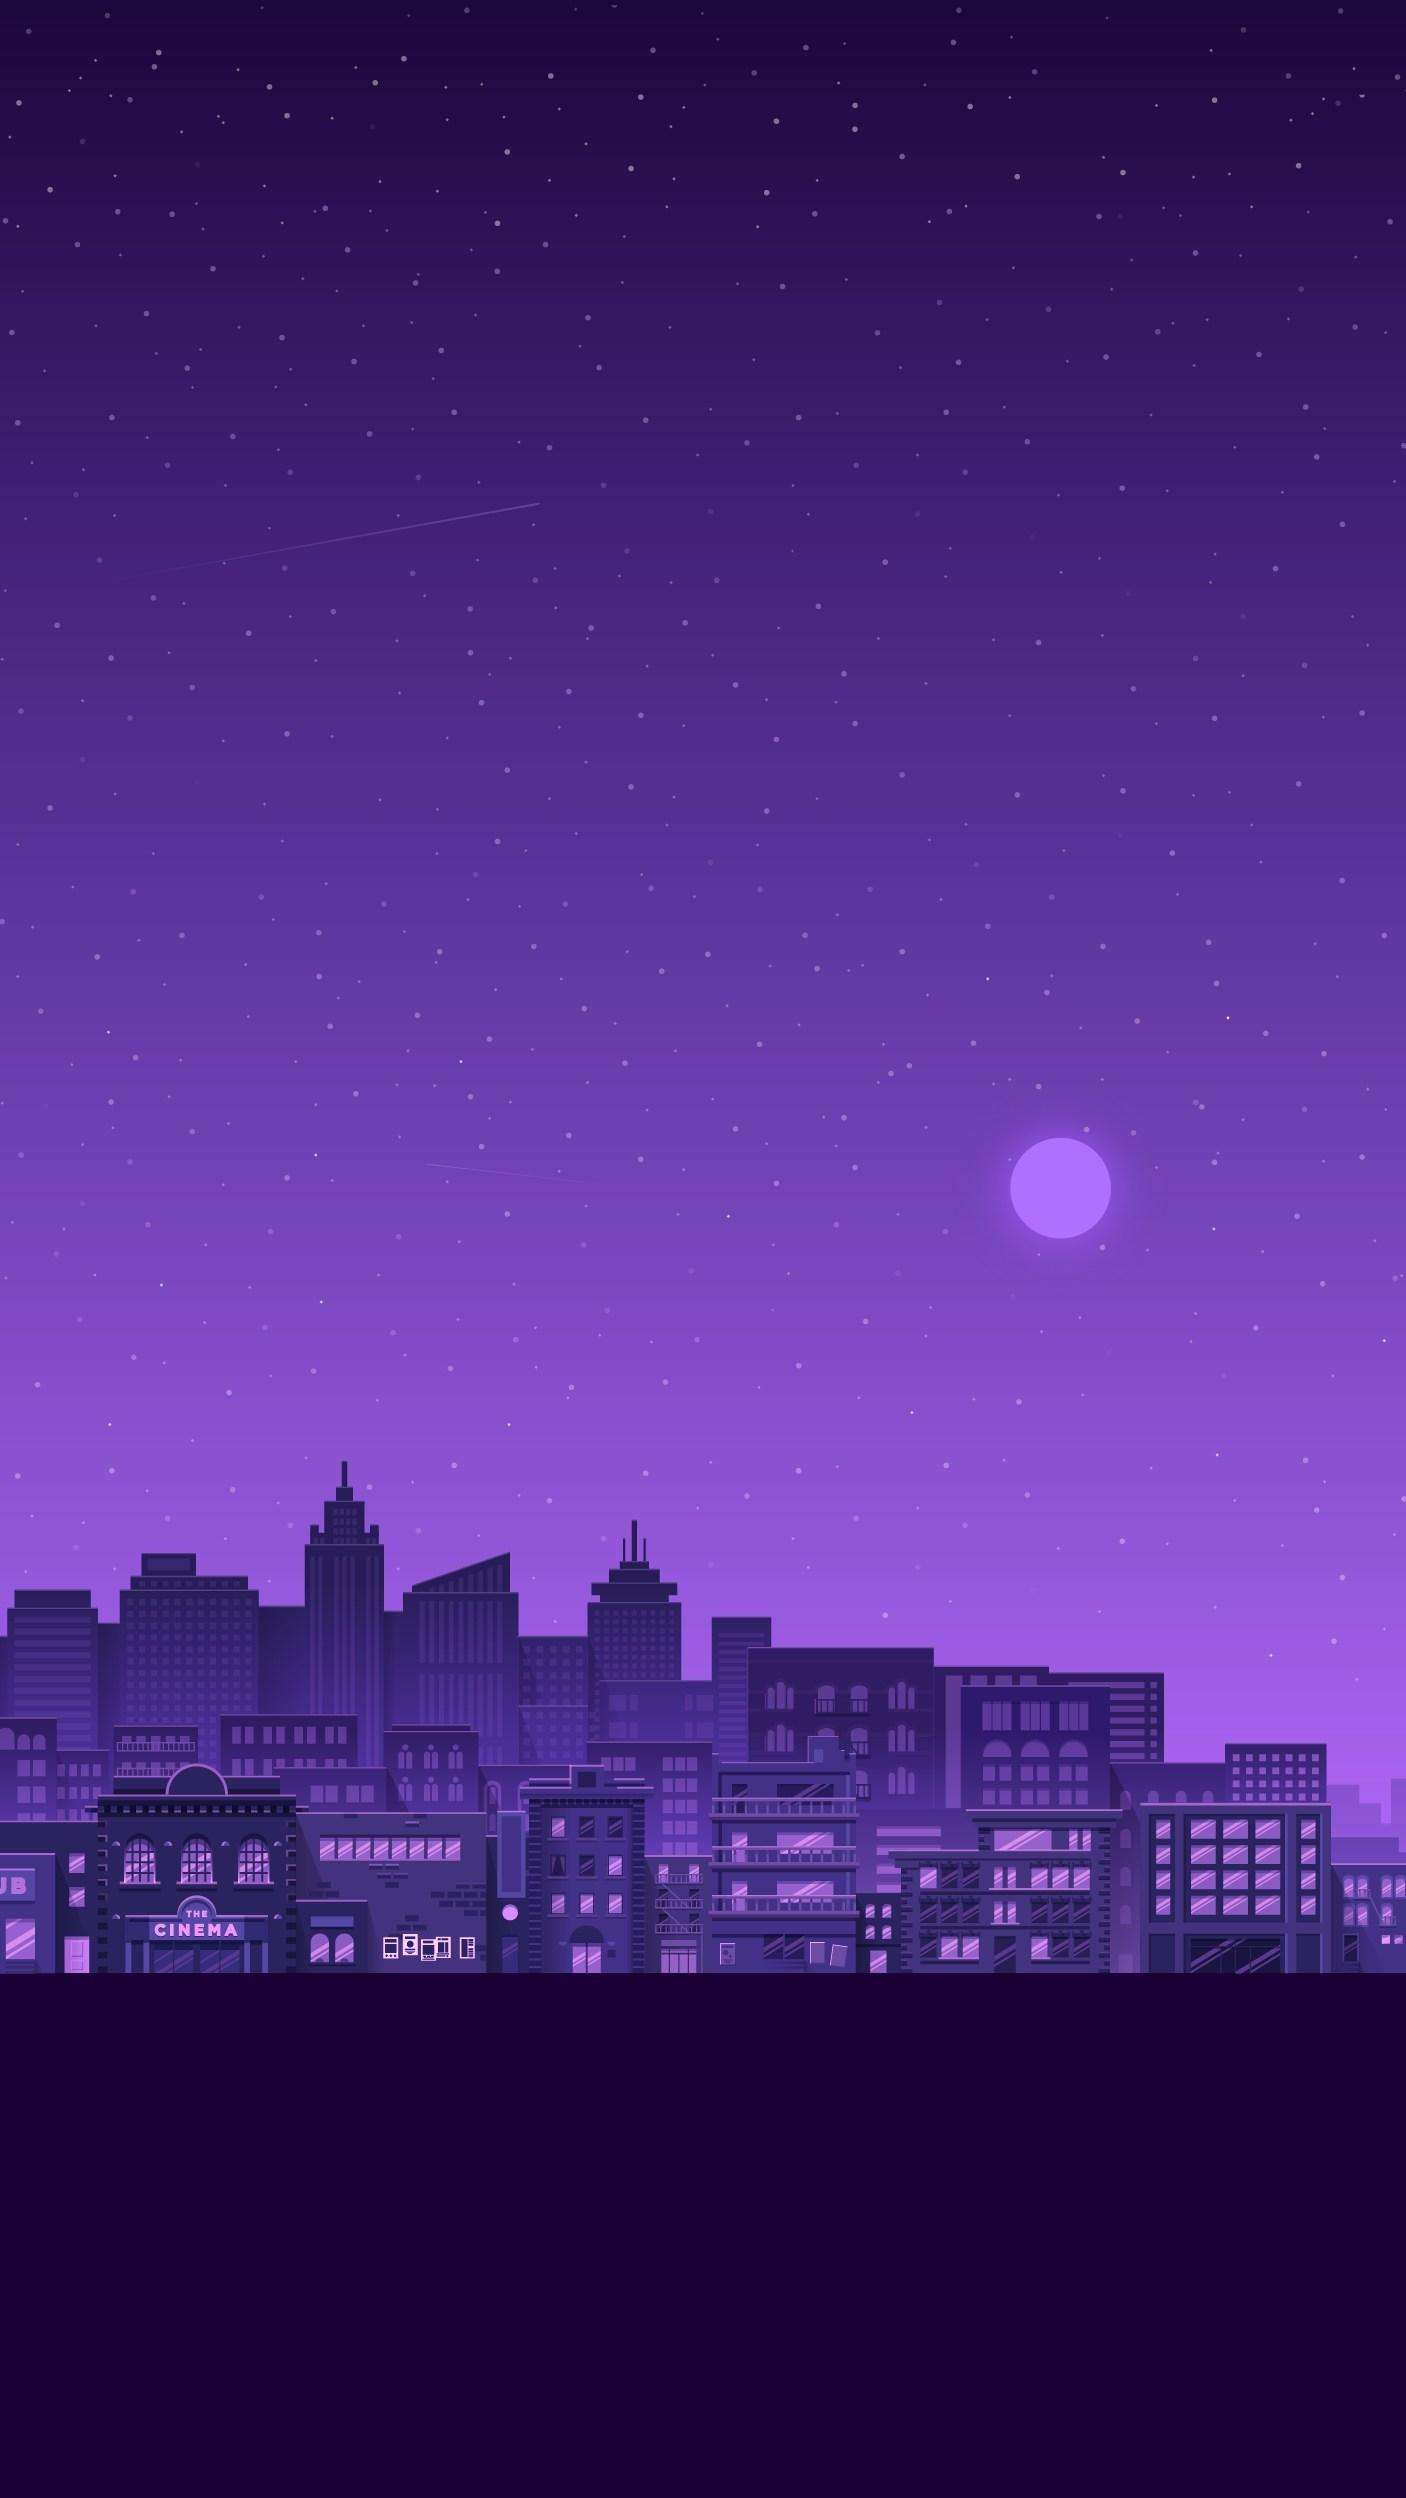 Free download Aesthetic Purple Wallpaper 12x12 [12x12] for ...